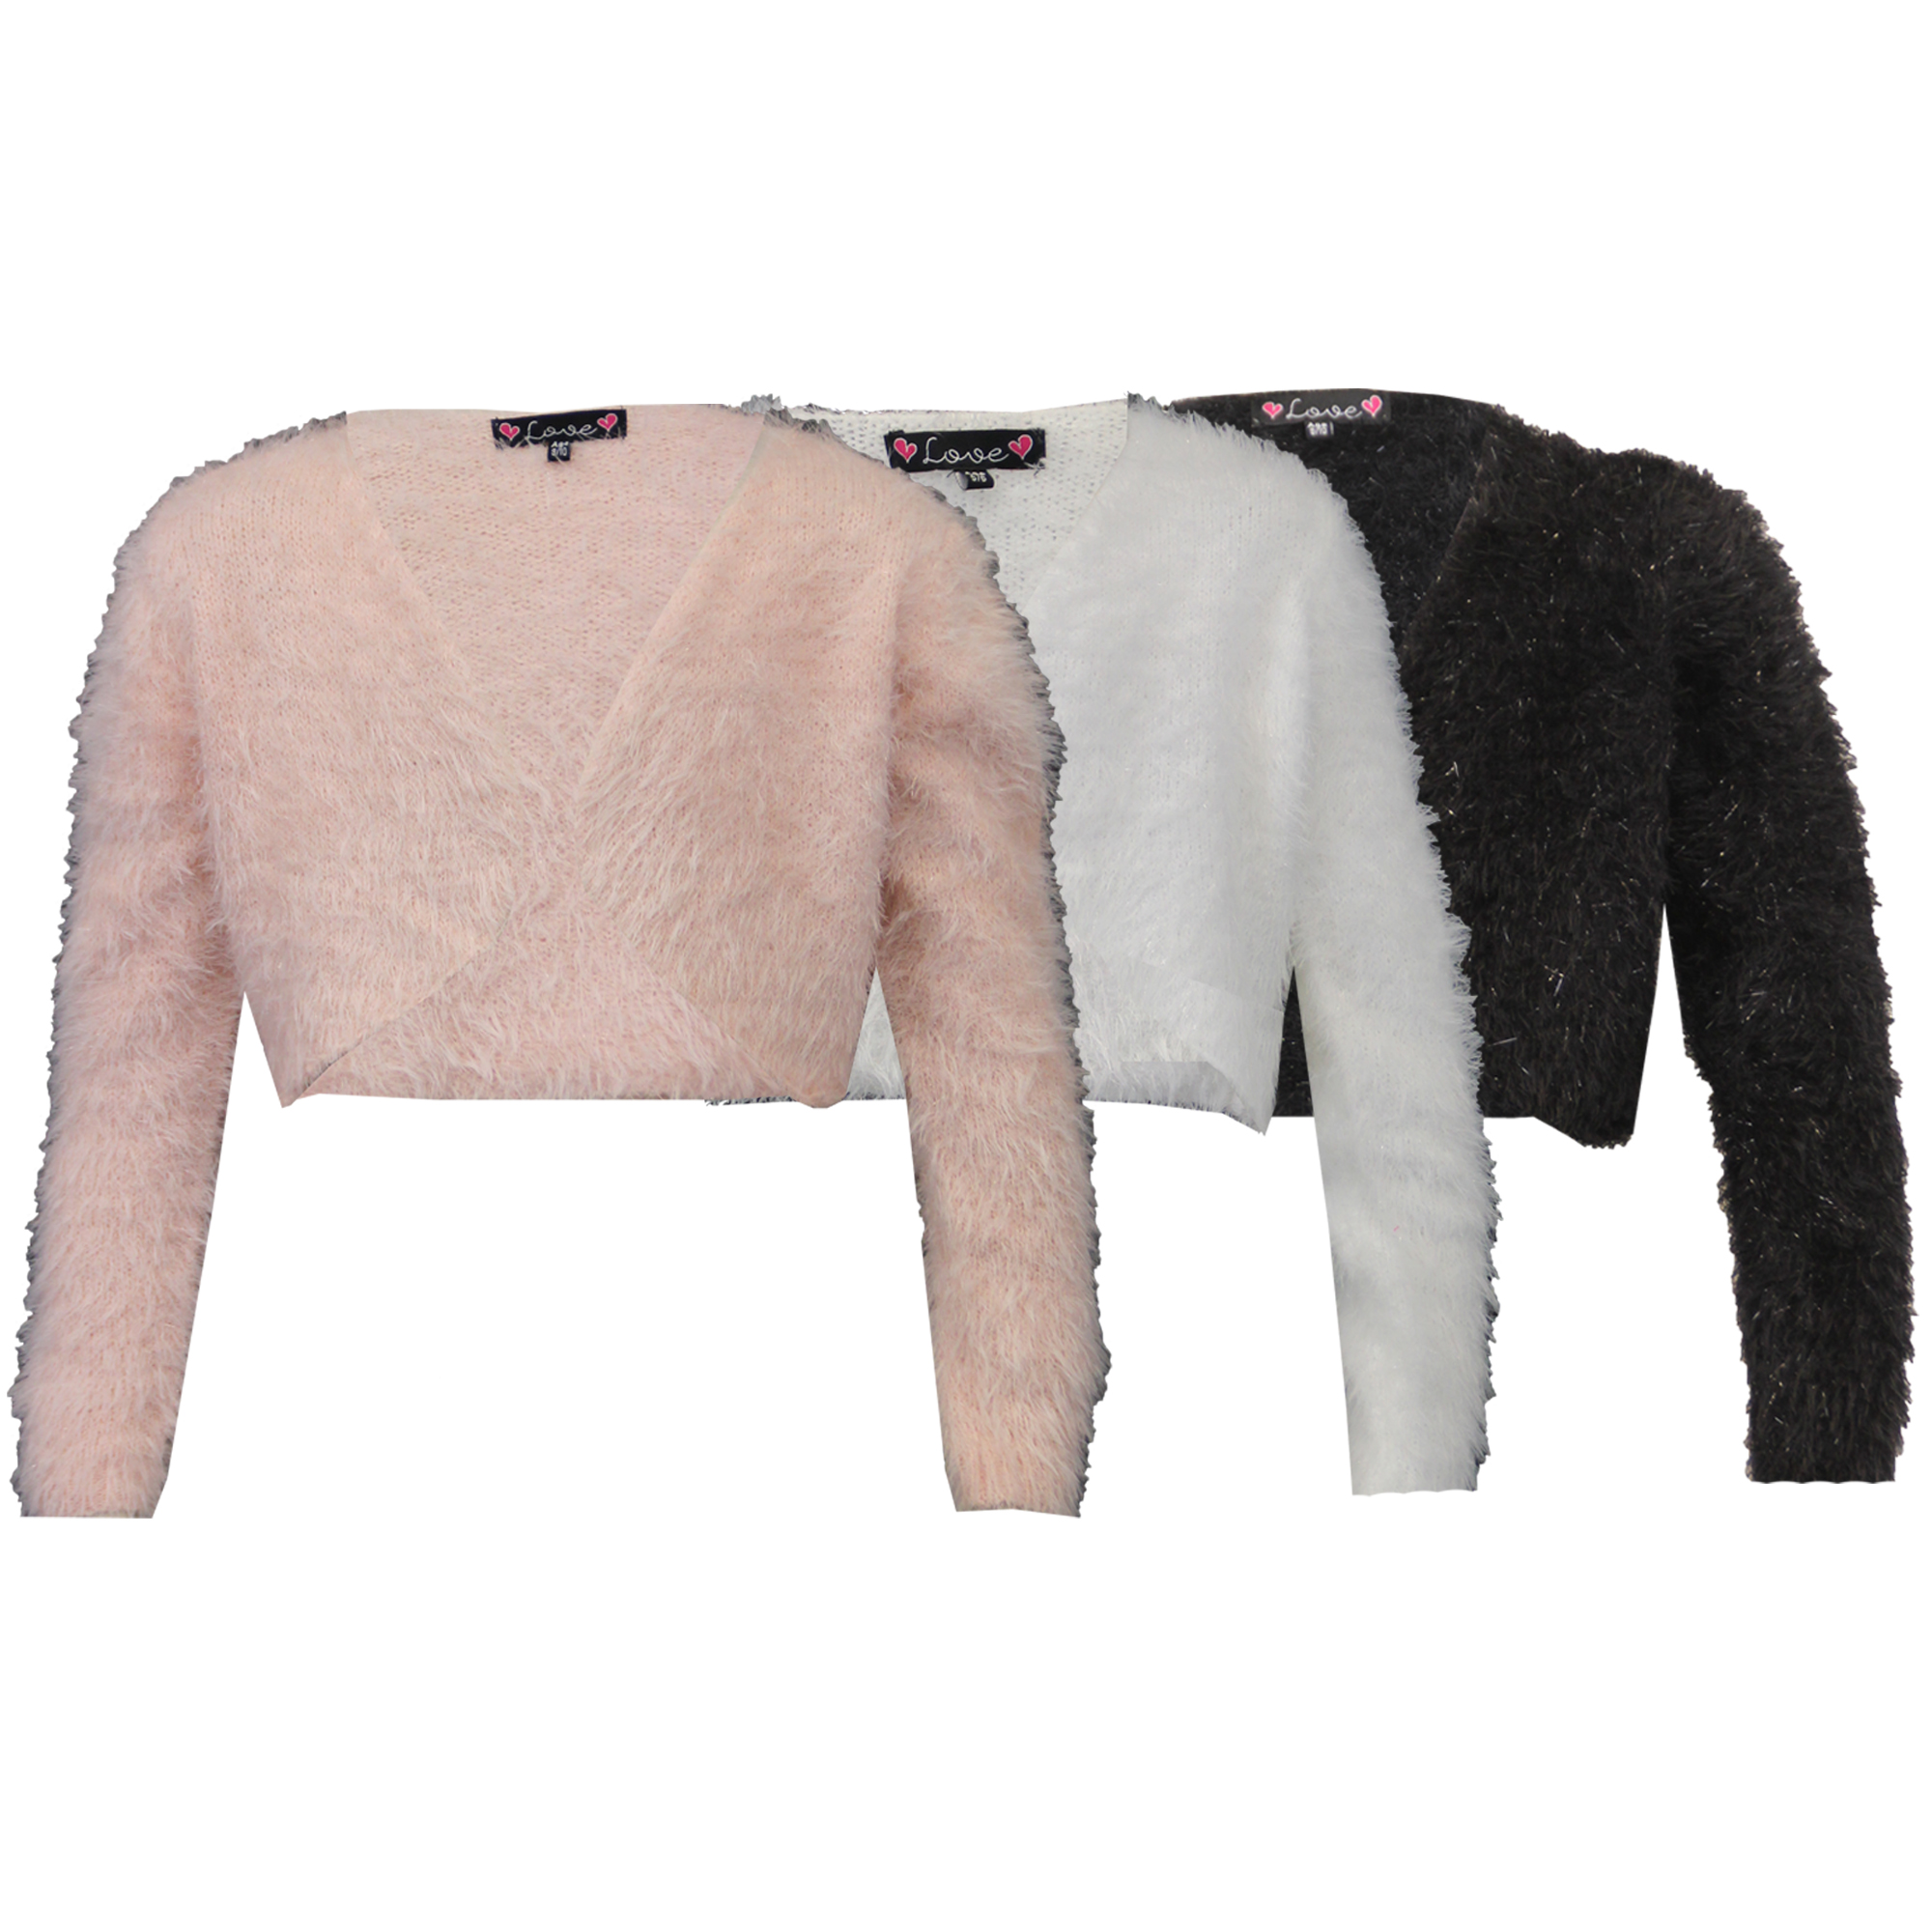 Girls Cardigan Kids Crop Top Knitted Bolero Shrug Mohair Fluffy ...